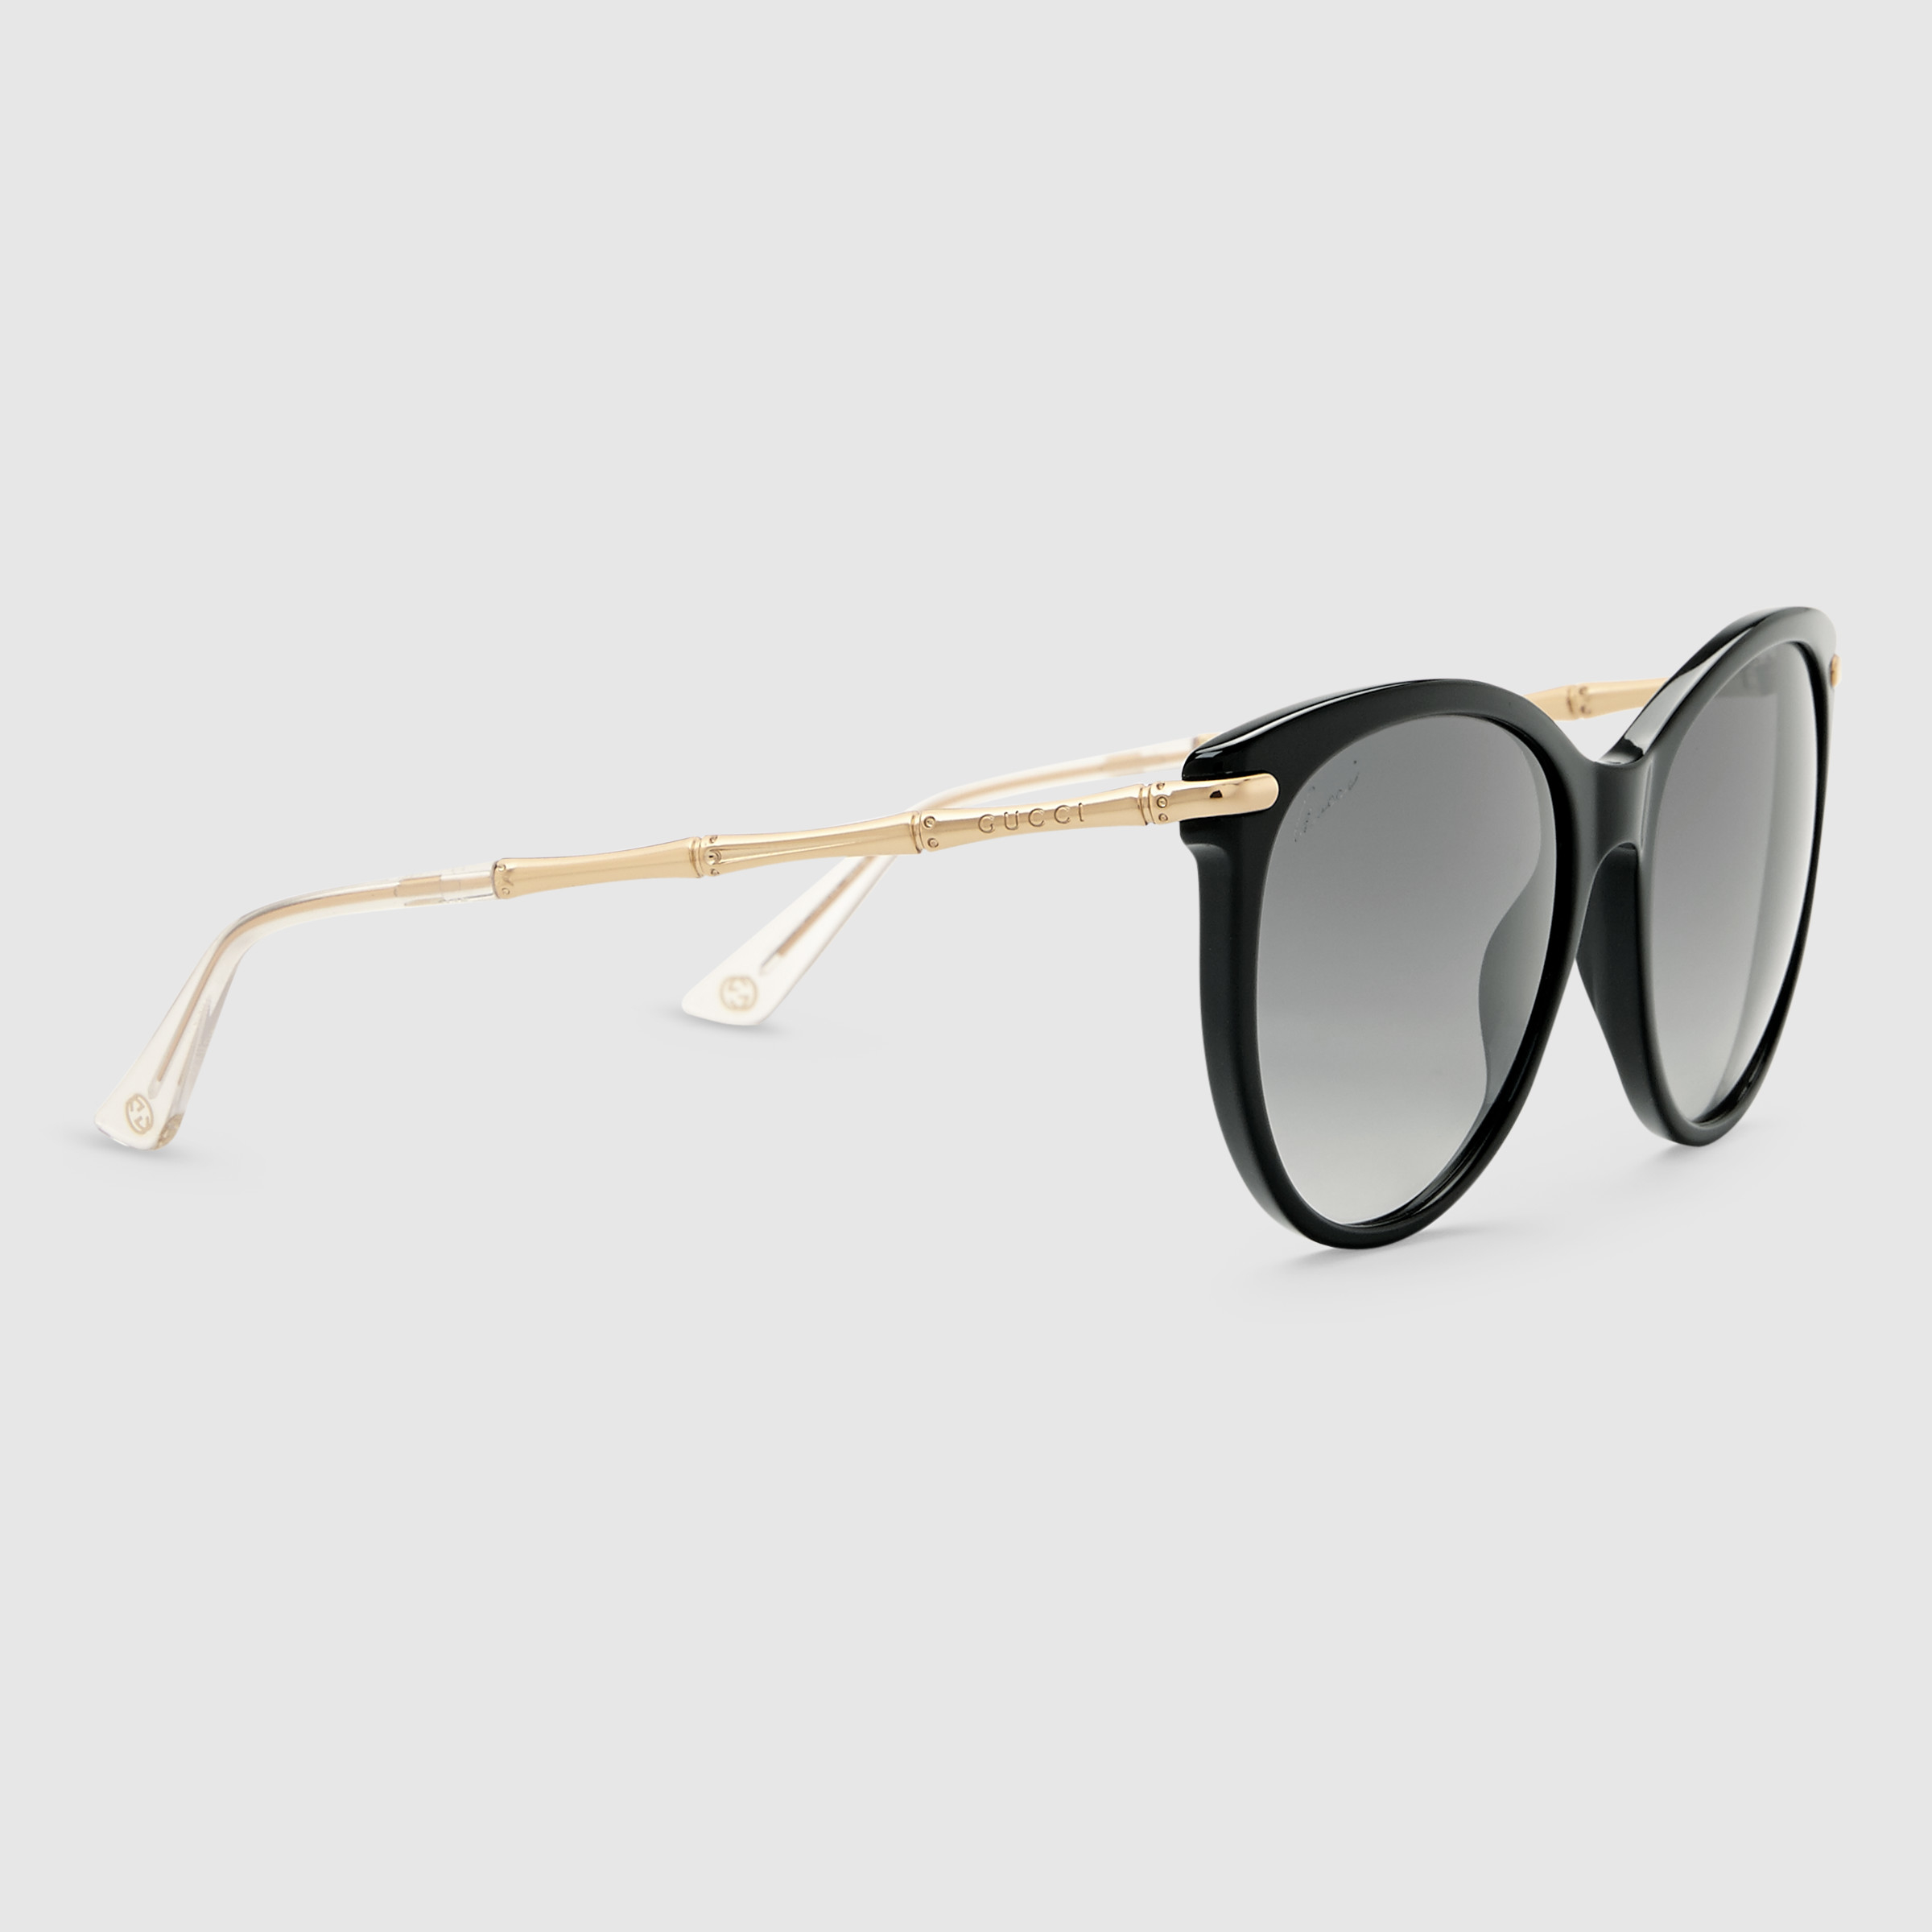 768e40b8335c4 Gucci Cat Eye Sunglasses With Metal Bamboo Temples in Yellow - Lyst